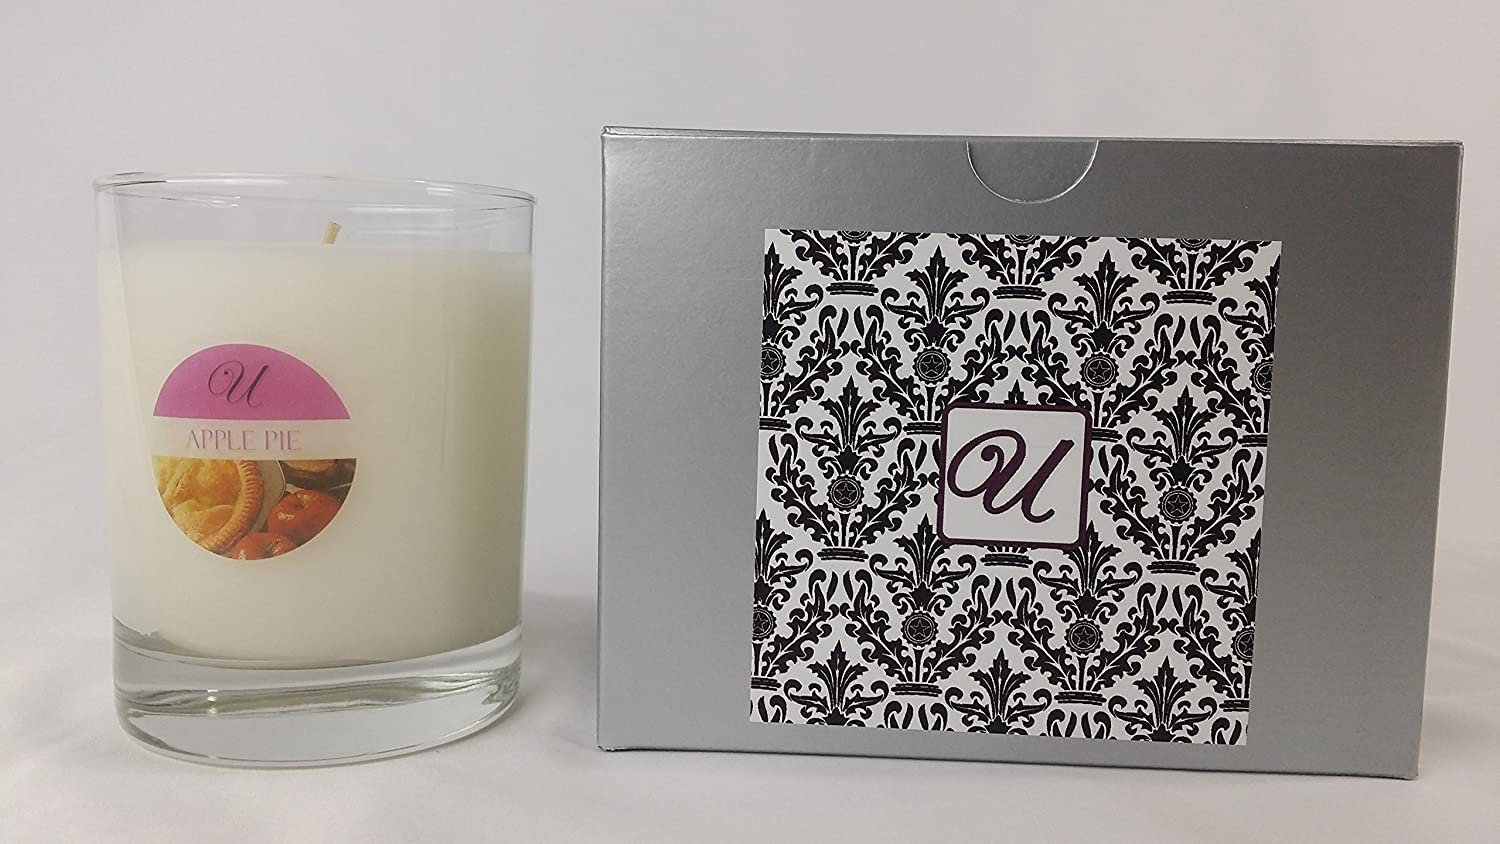 Apple Pie (14 oz Glass Container) Unrivaled Candles Select-a-Size (Necklace); Jewelry Inside Valued at $10 to $10,000.